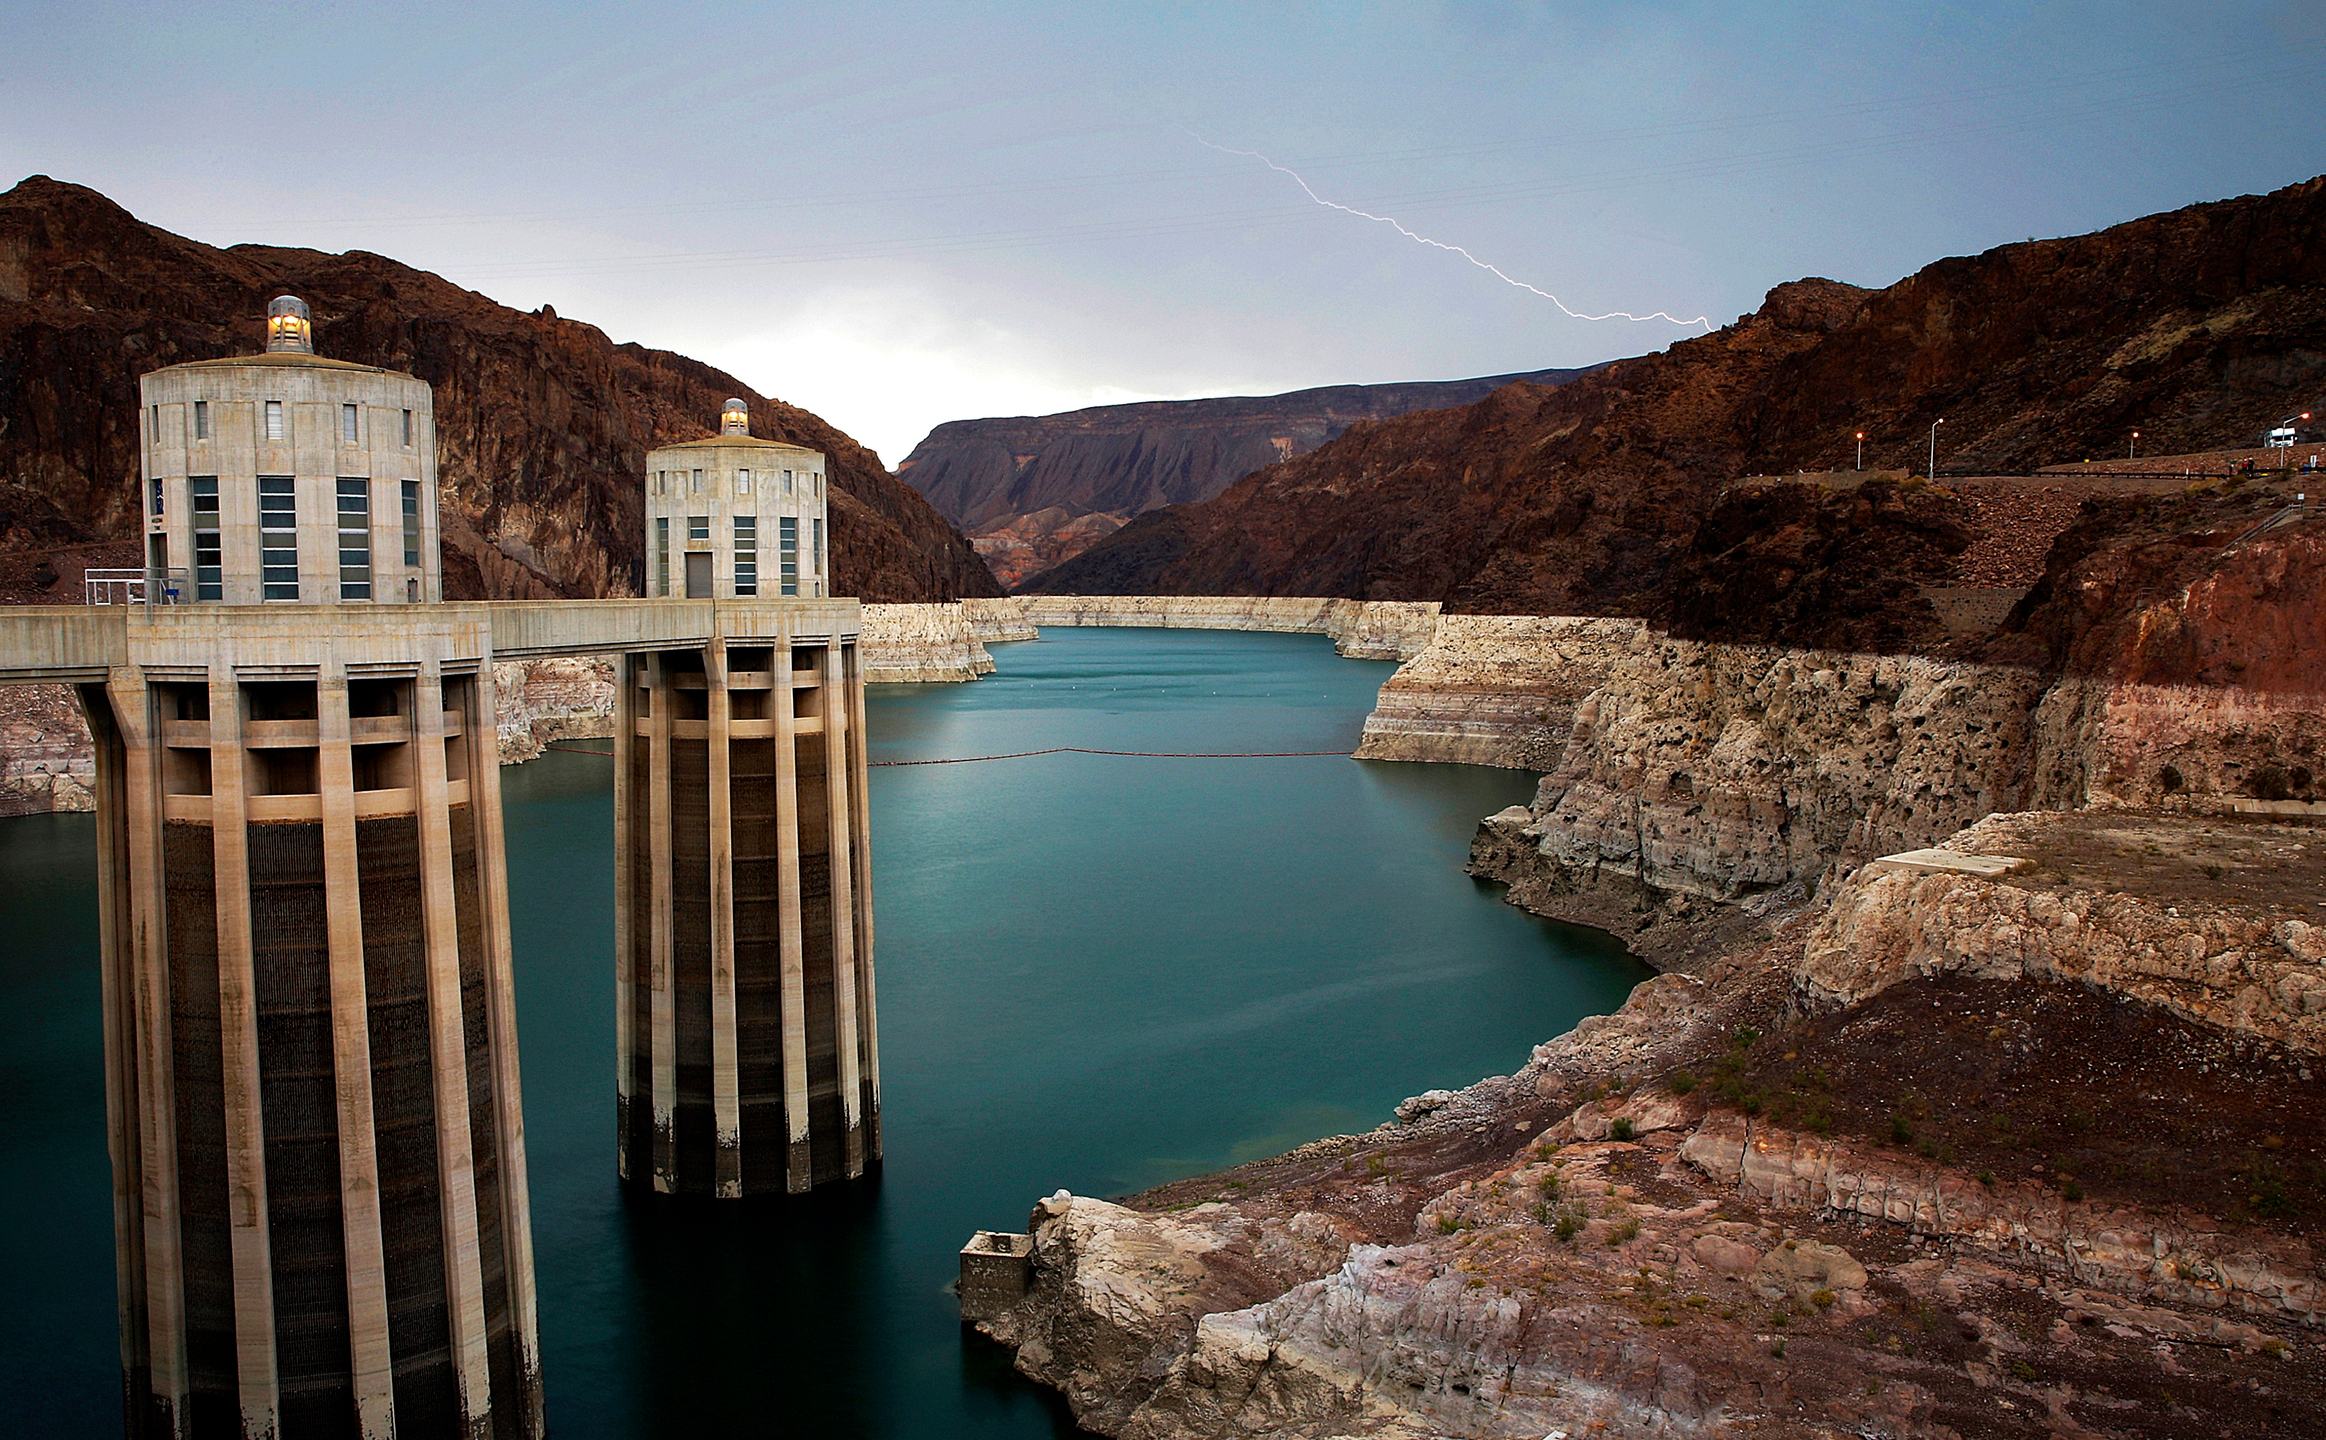 In this July 28, 2014, file photo, lightning strikes over Lake Mead near Hoover Dam that impounds Colorado River water at the Lake Mead National Recreation Area in Arizona. The Bureau of Reclamation is forecasting first-ever water shortages because of falling levels at Lake Mead and says the reservoir could drop so low that it might not be able to generate electricity at Hoover Dam. (AP Photo/John Locher, File)